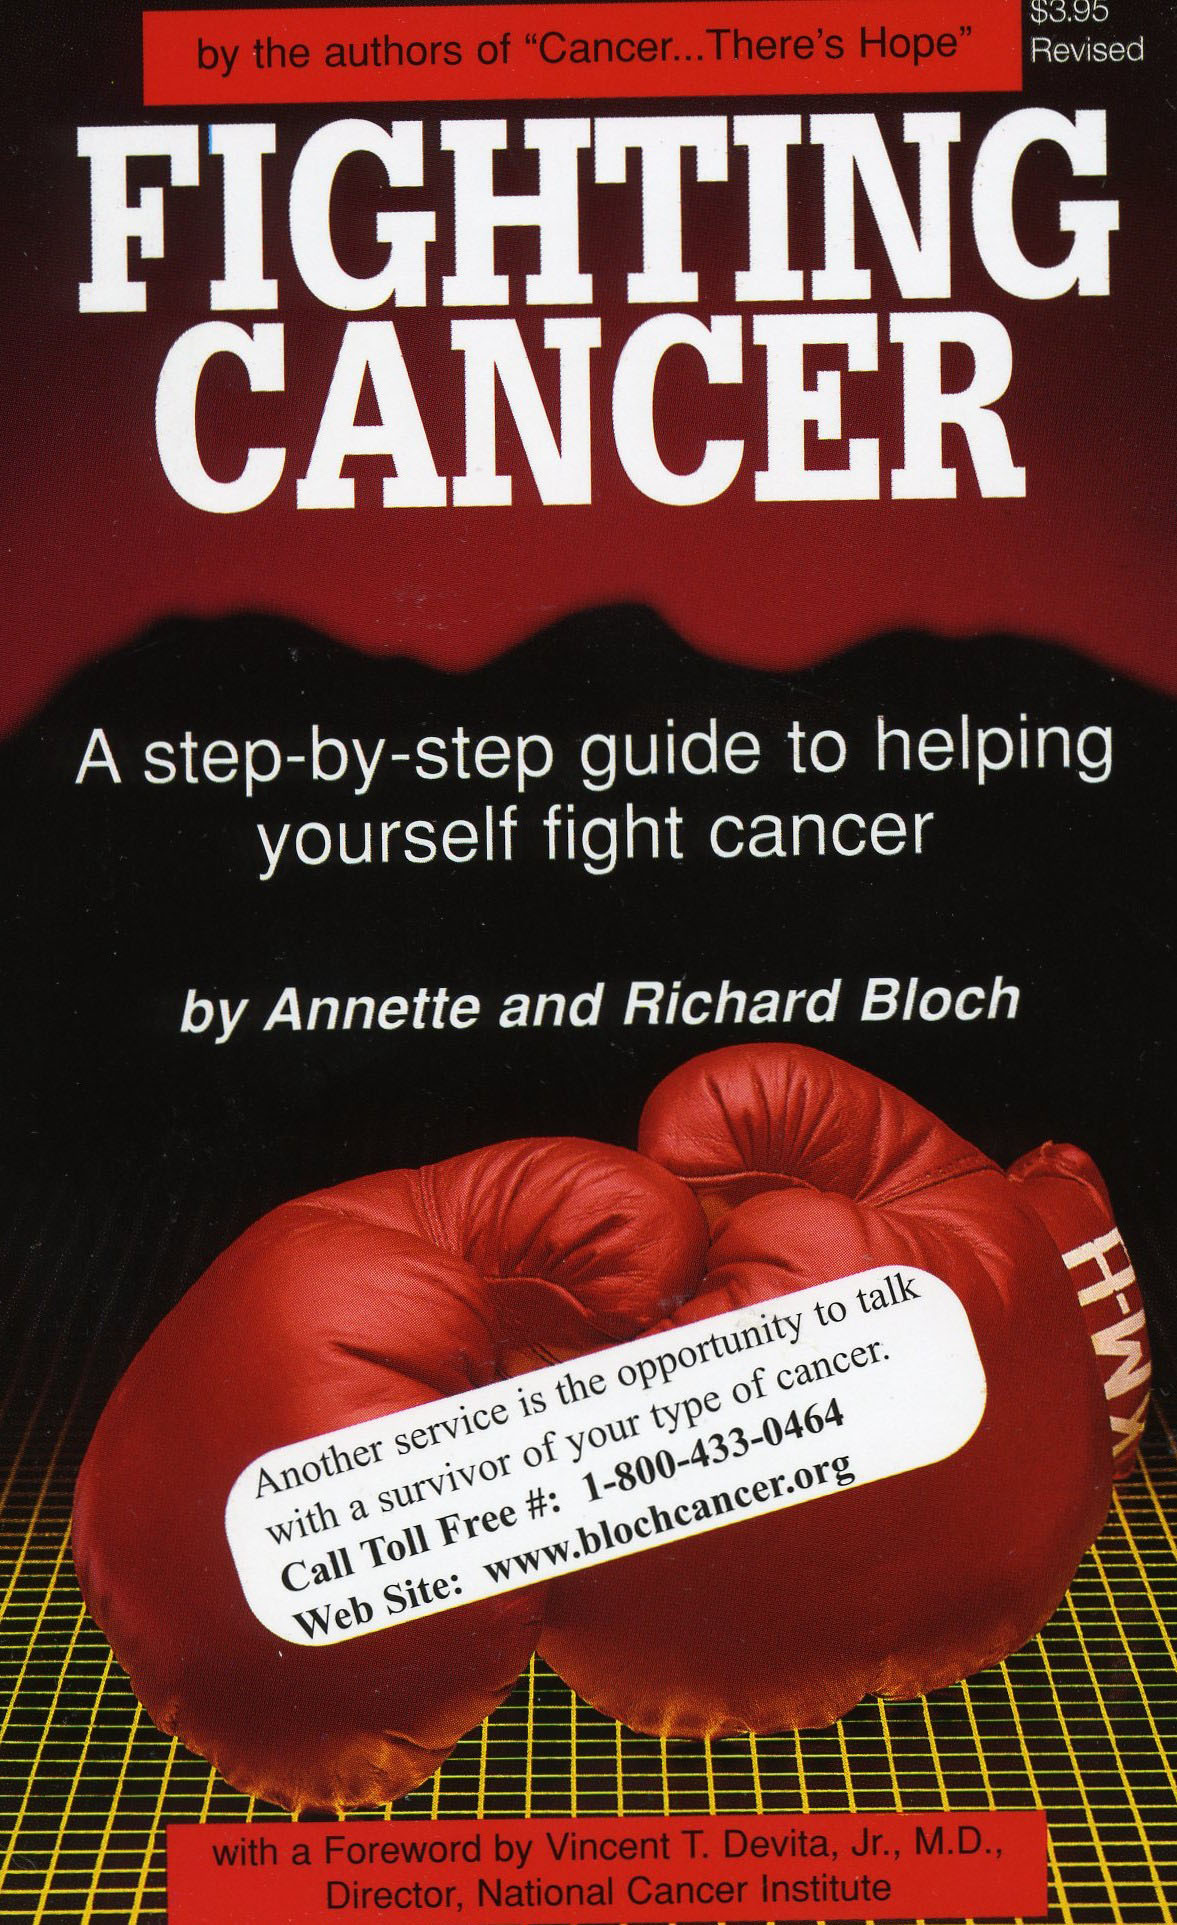 Dick bloch cancer hotline